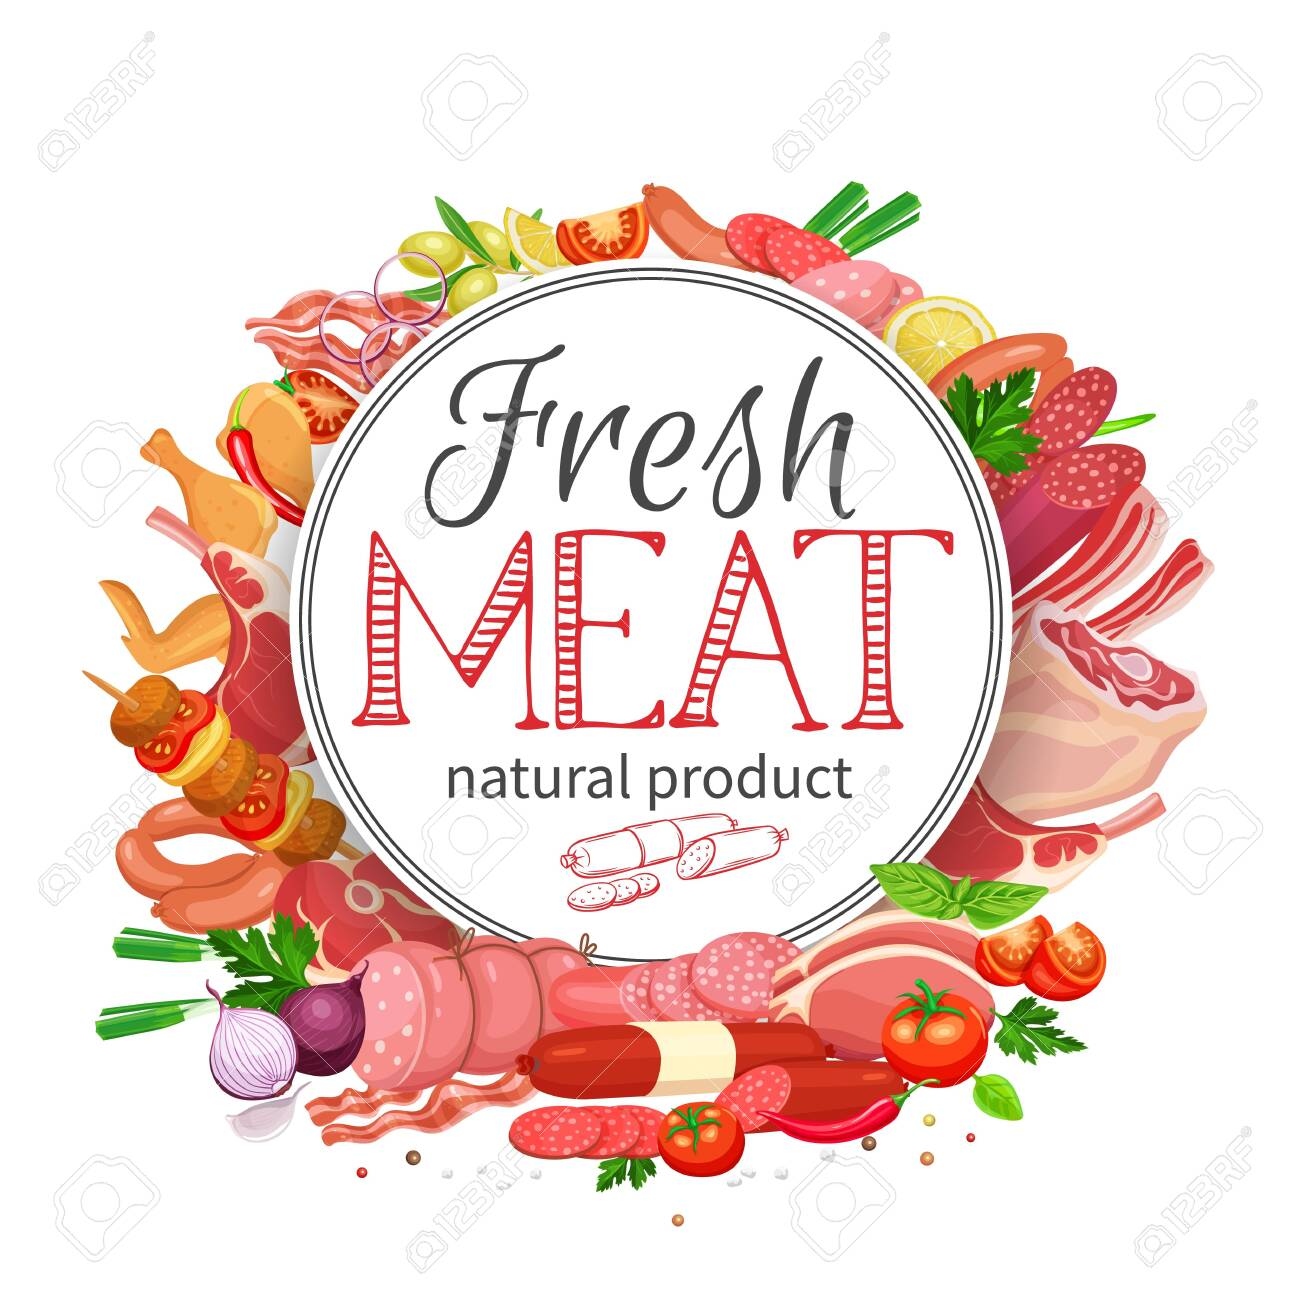 Meat products with vegetables and spices round banner template for food meat production, brochures, banner, menu and market design. Vector Illustration. - 148570584